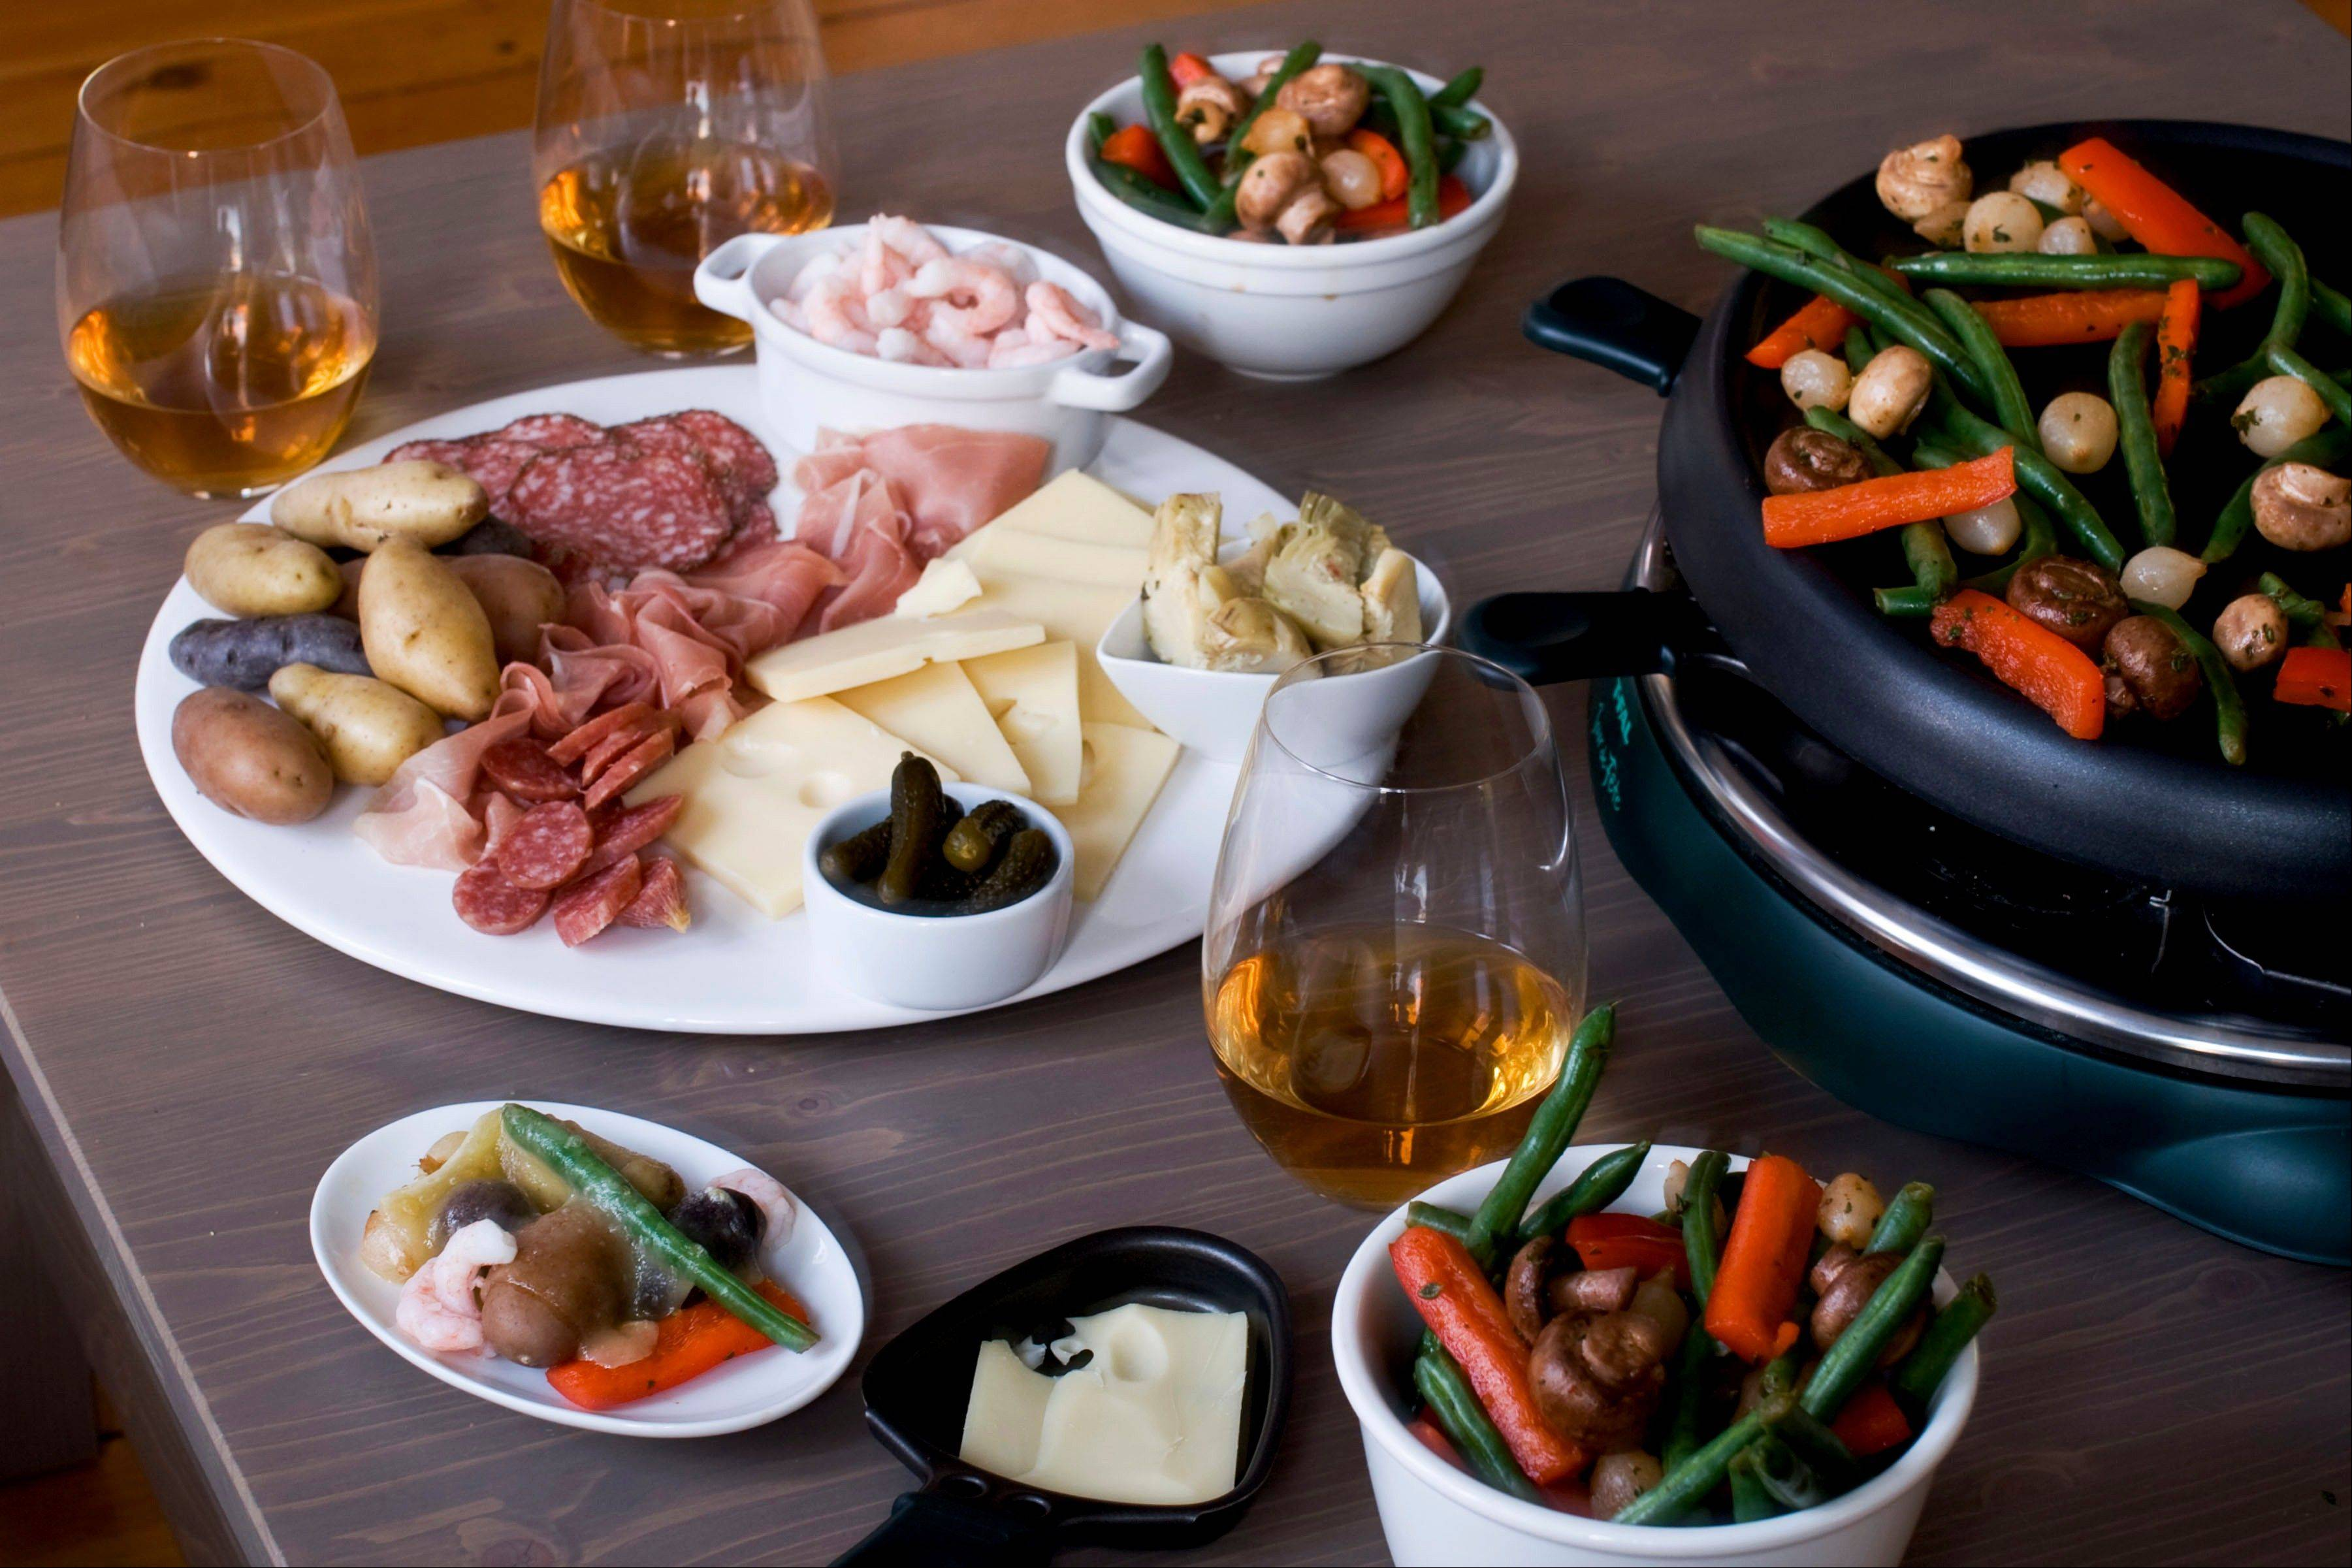 New Year's Eve is the perfect time to gather friends for raclette, a cheesy Alpine tradition that's akin to fondue.